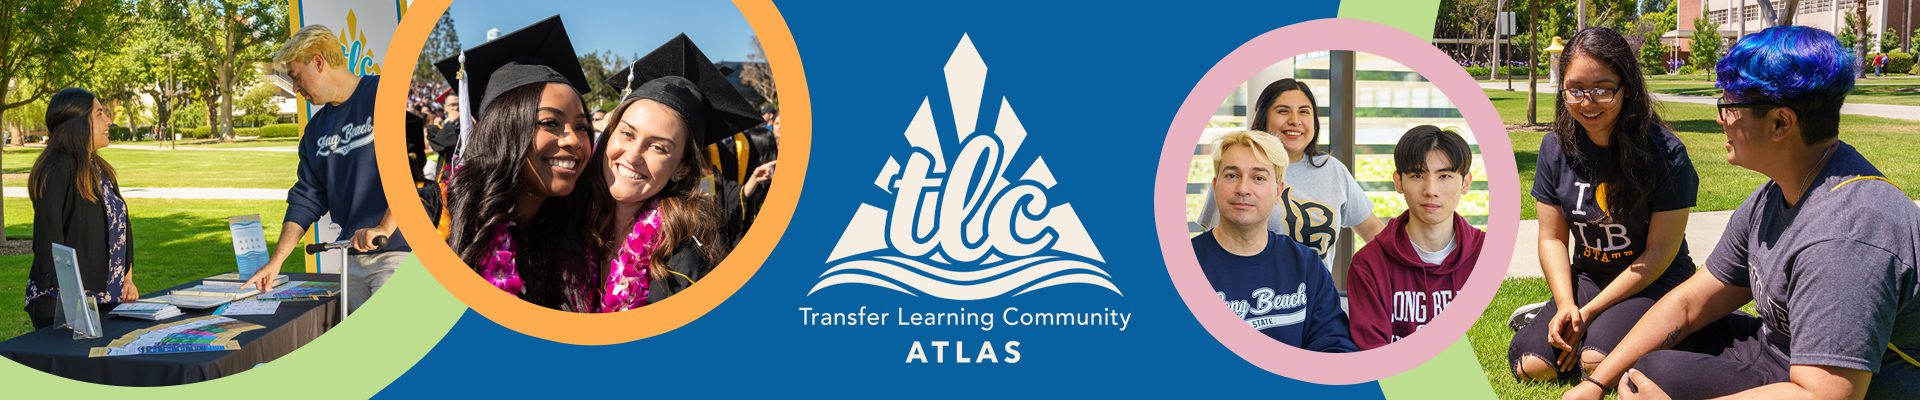 Transfer Learning Community